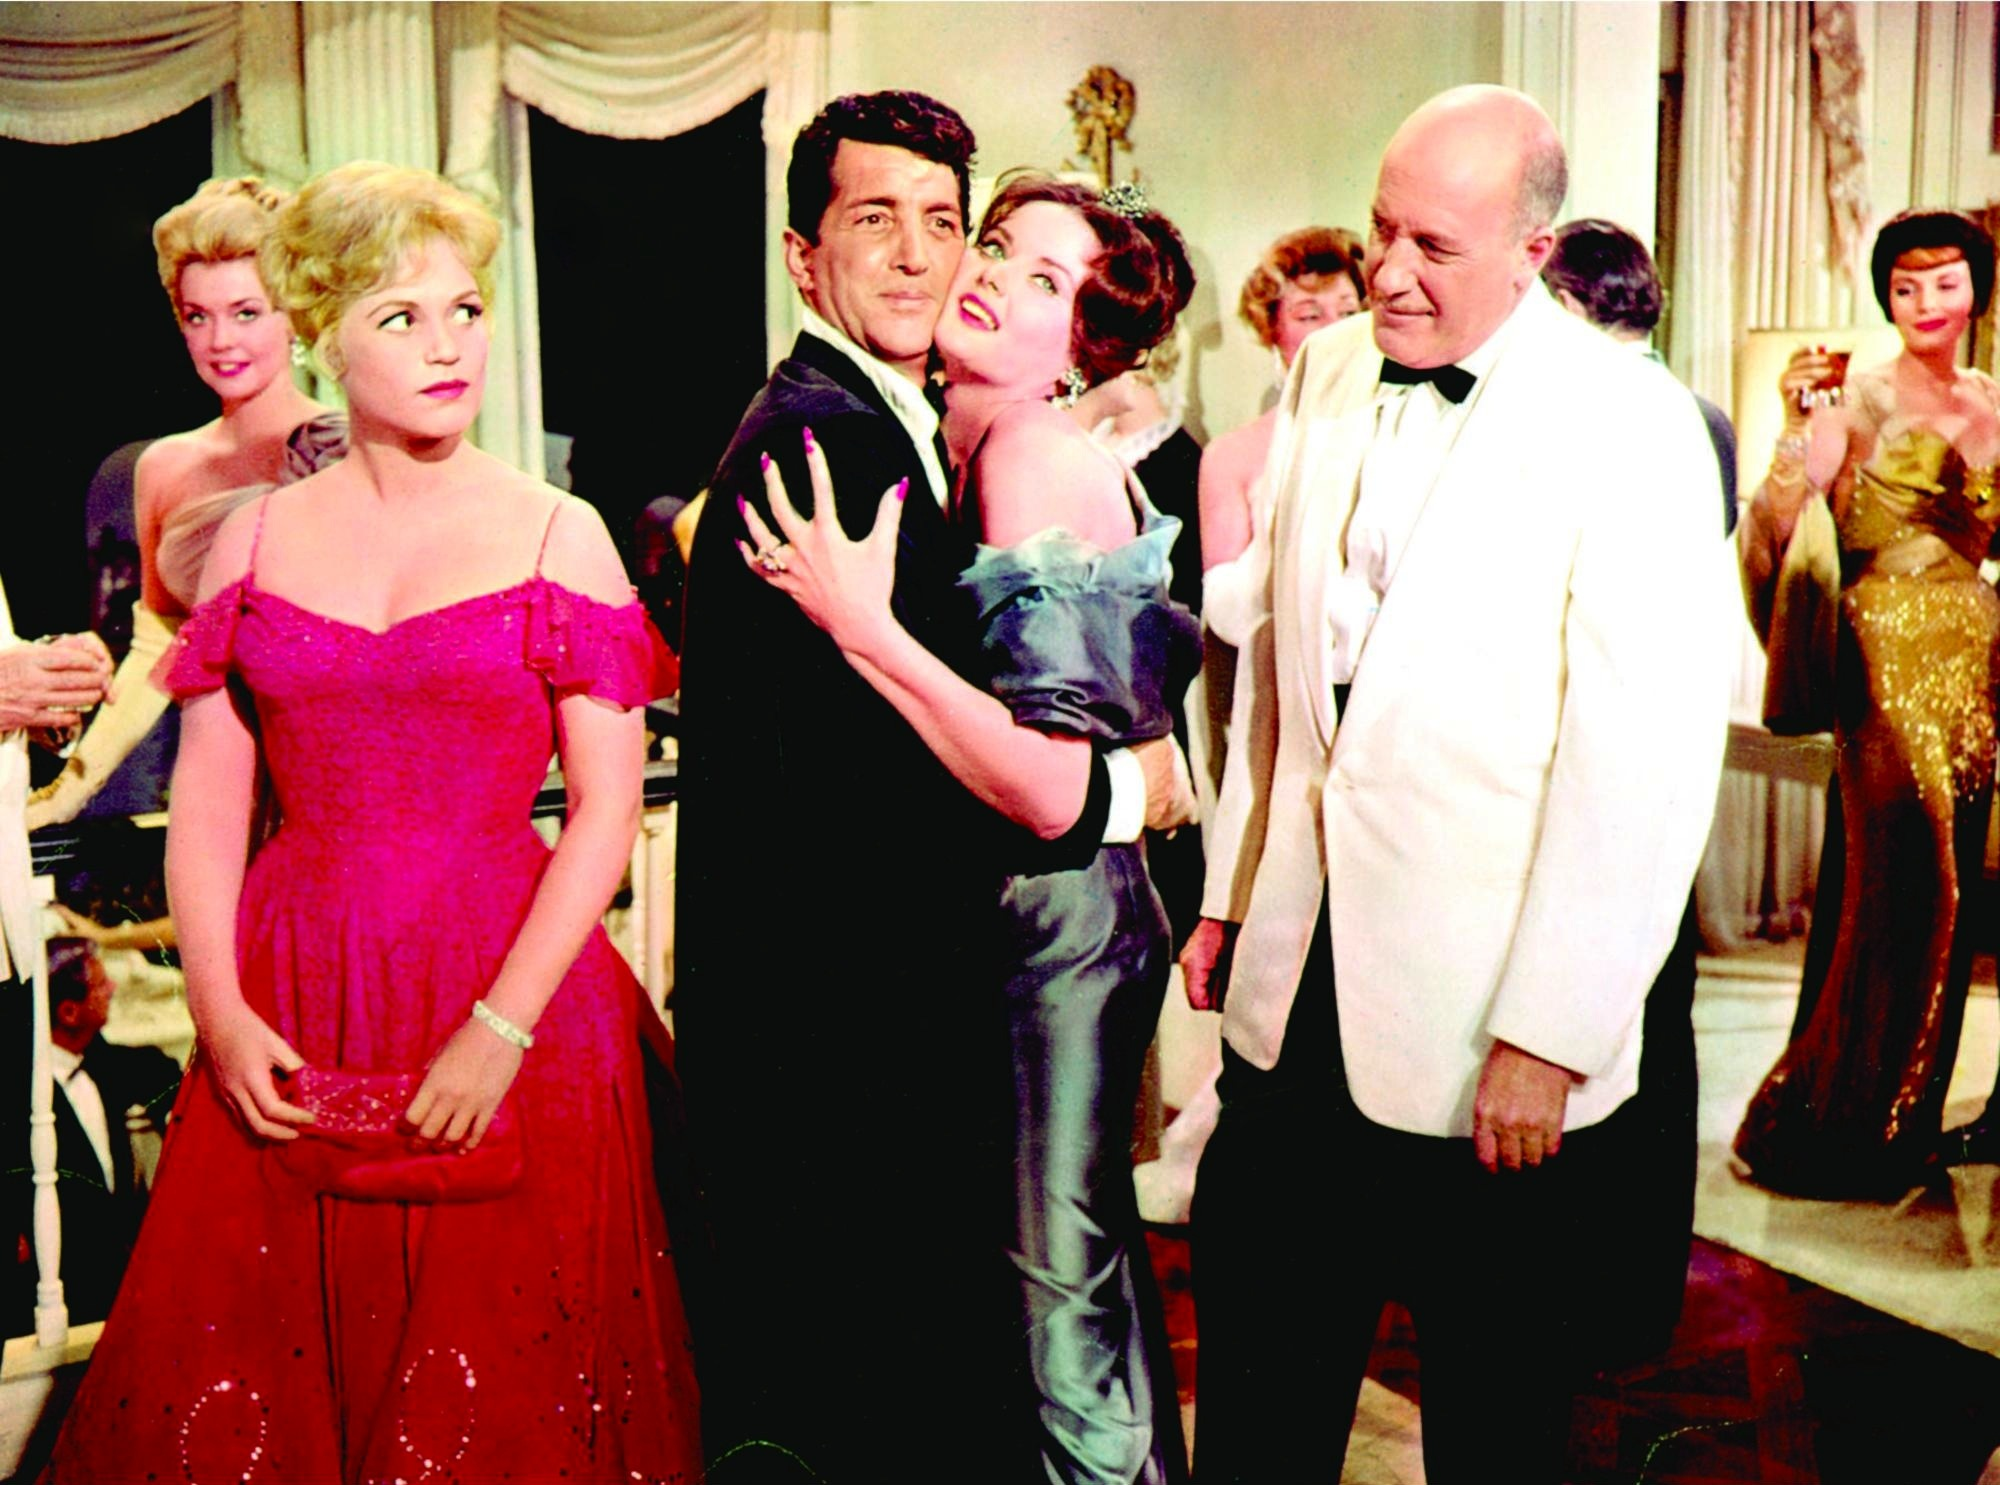 Dean Martin, Fred Clark, and Judy Holliday in Bells Are Ringing (1960)